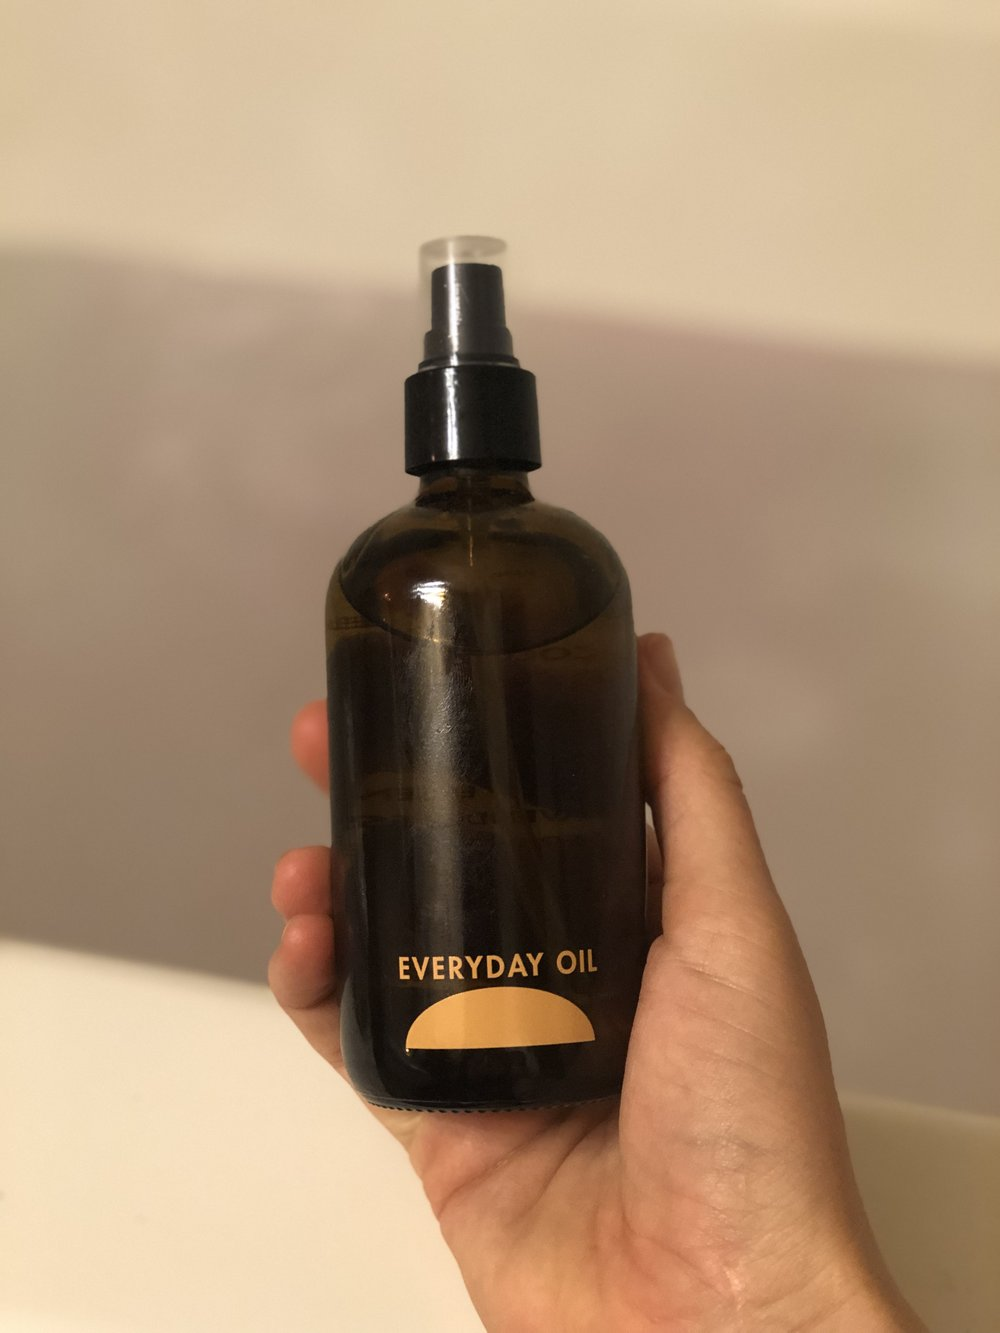 everyday oil. if you didn't know, now you know. it's fantastic and feels good… everyday. also, where you might ask? everyWHERE. srsly. put it everywhere. when you smell it, you'll hardly be able to resist anyhow!